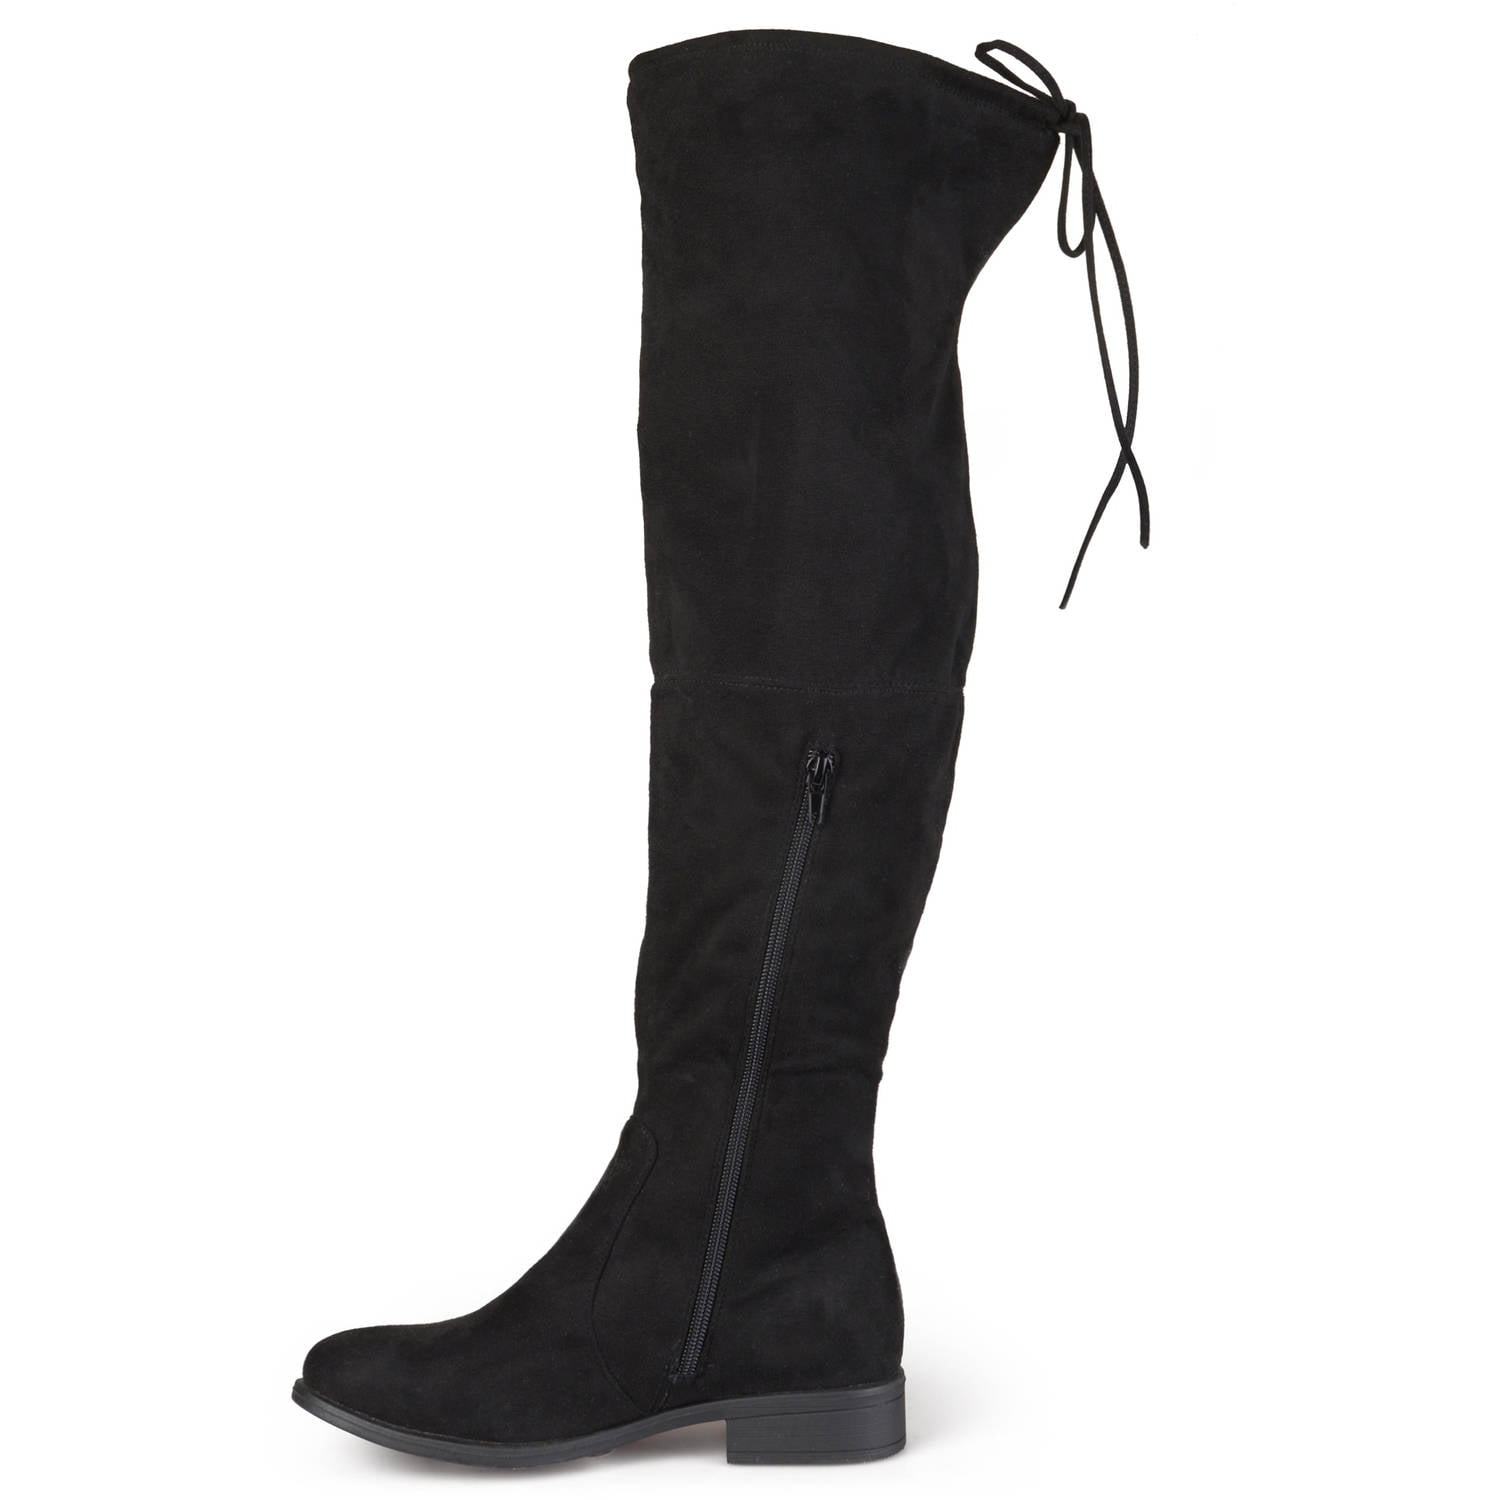 Brinley Co. Womens Wide Calf Faux Suede Over-the-knee Boots ...